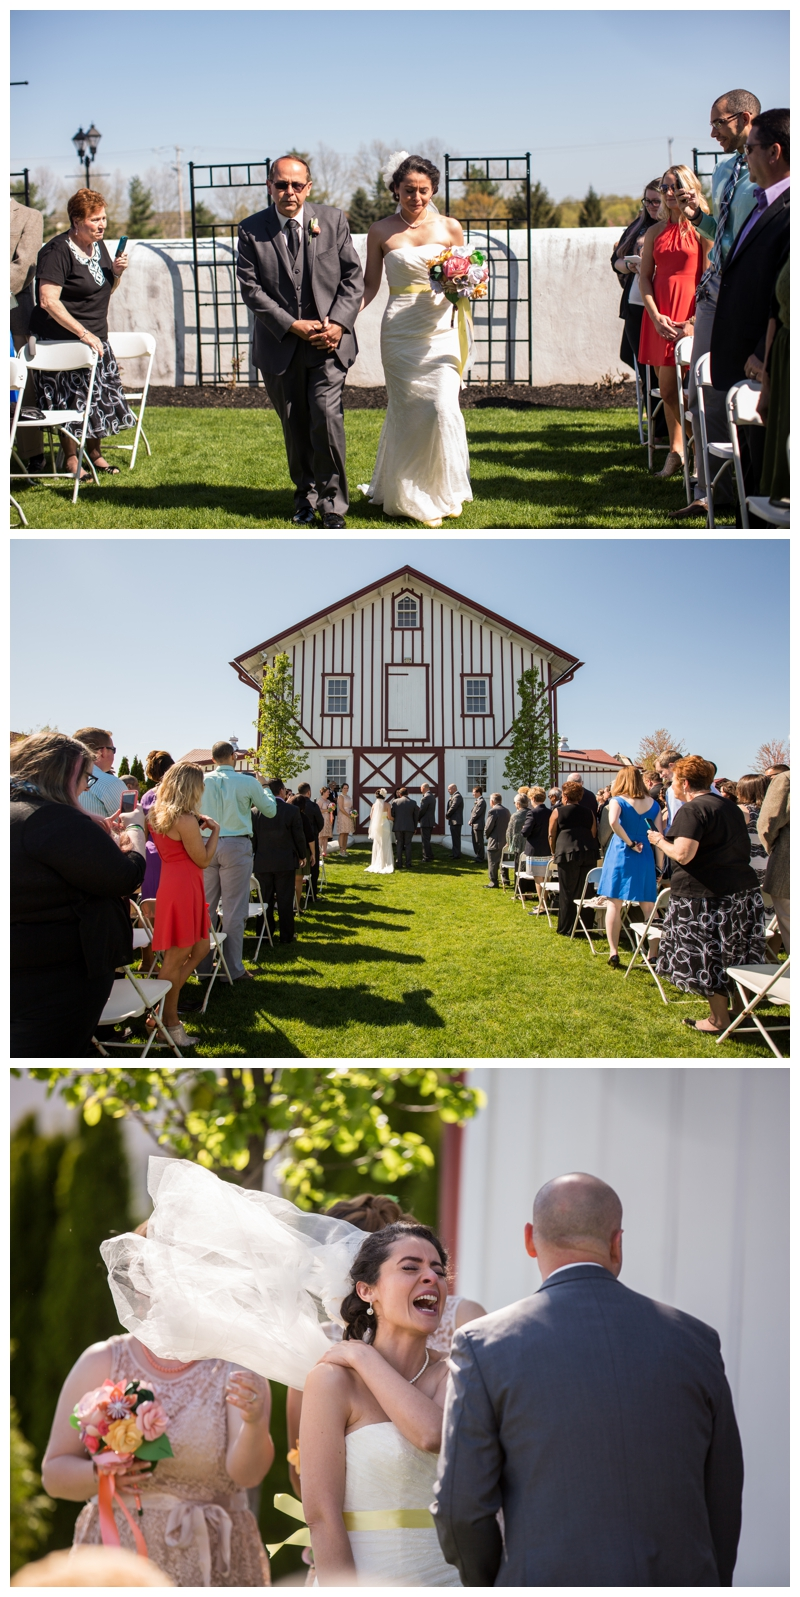 During the ceremony, everyone had teary eyes, until the wind came and took Marisa's veil straight into the air. All of our tears turned to a little giggle!